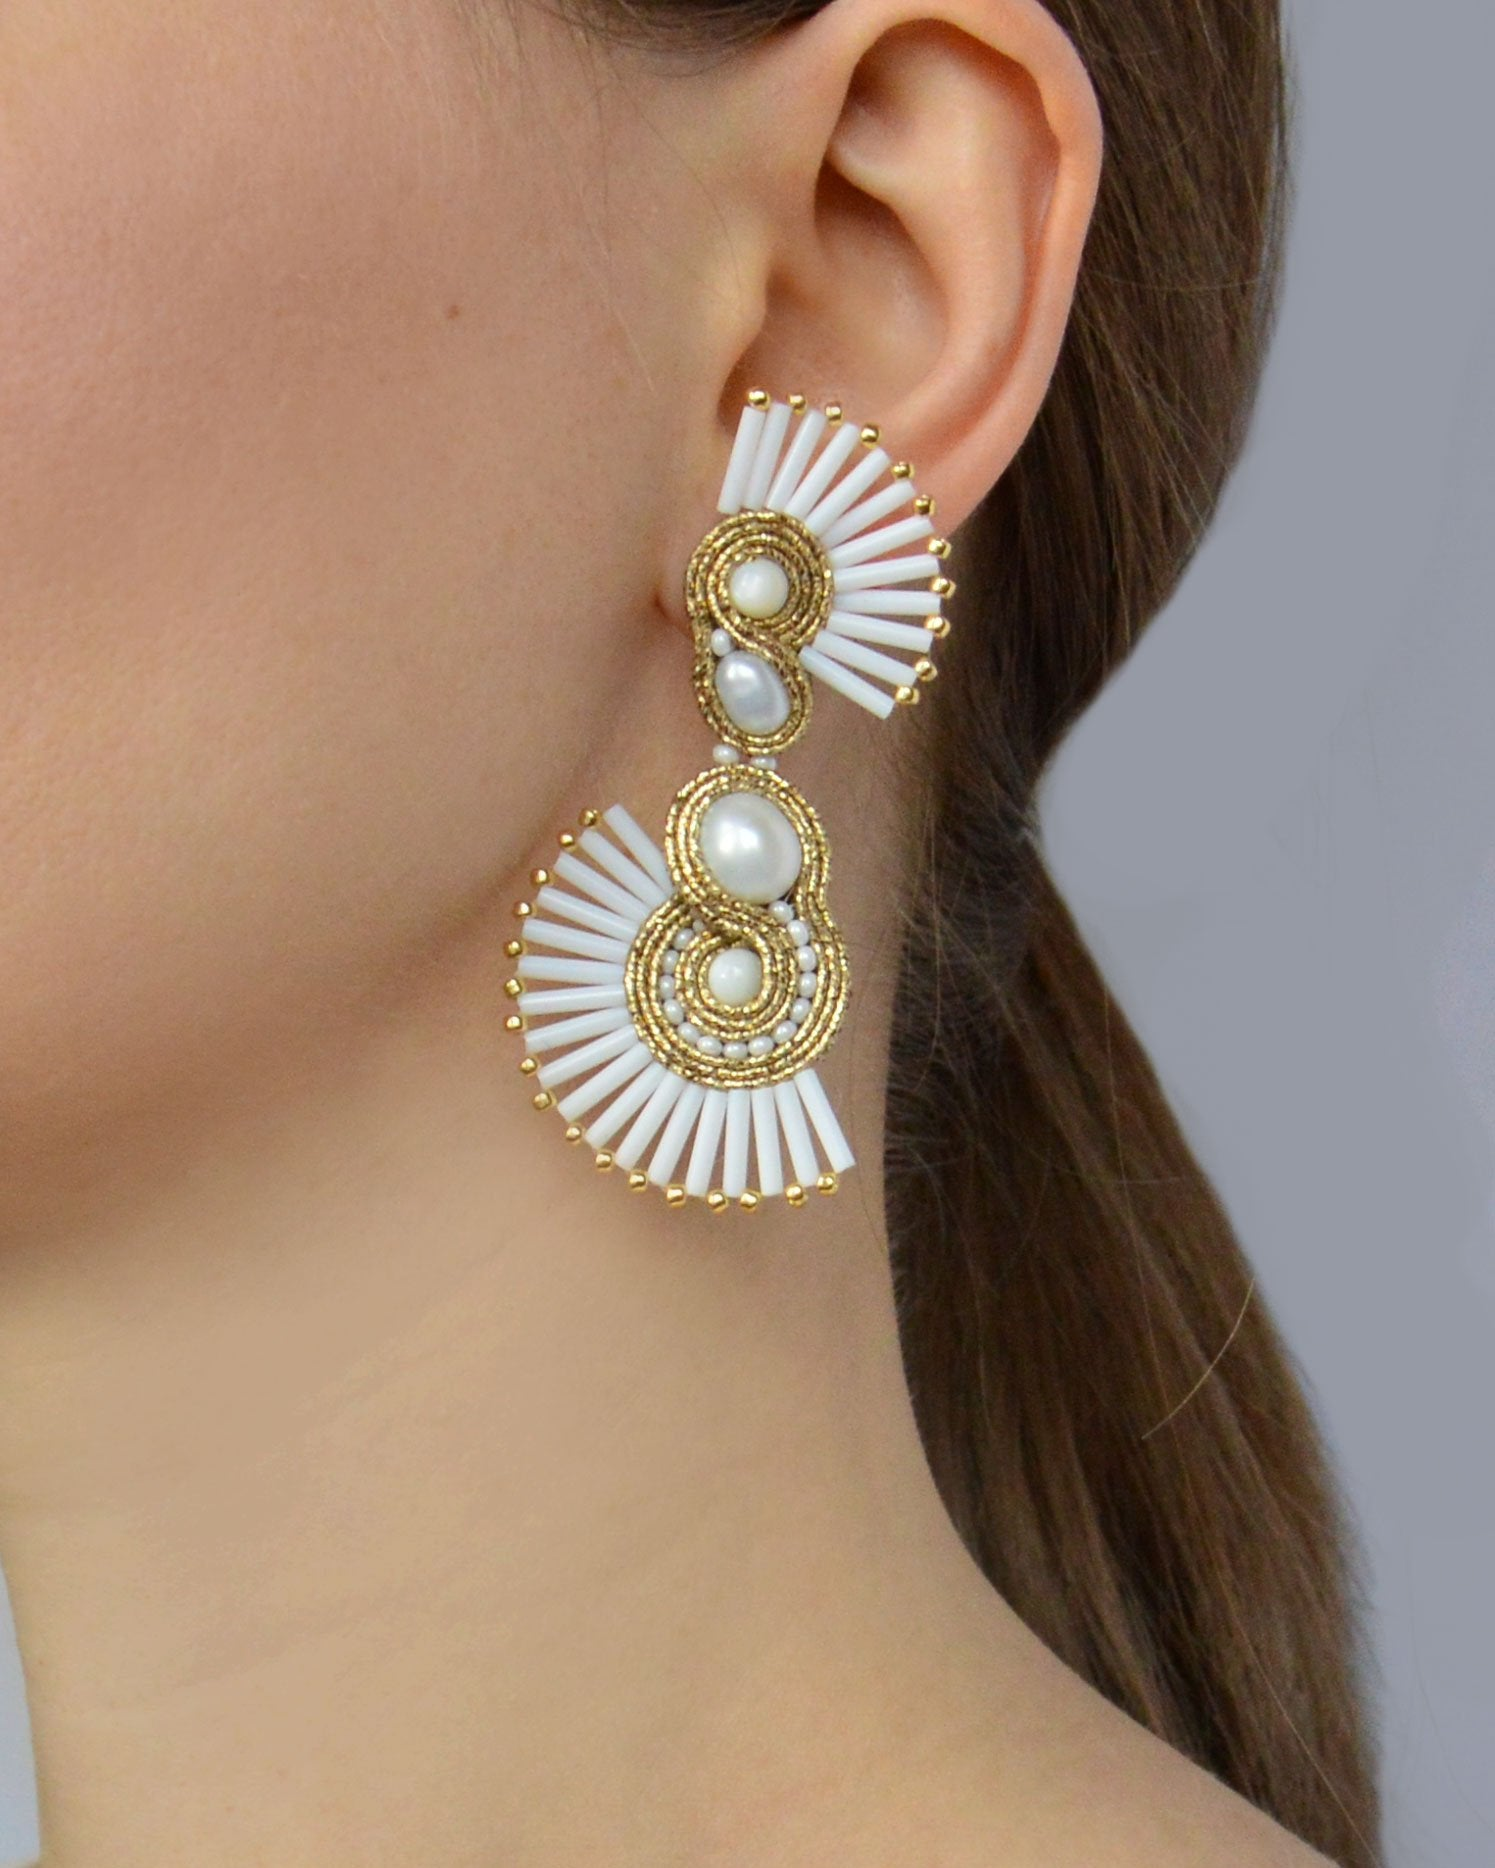 White and gold Asymmetric earrings - Vanessa Stylez Boutique